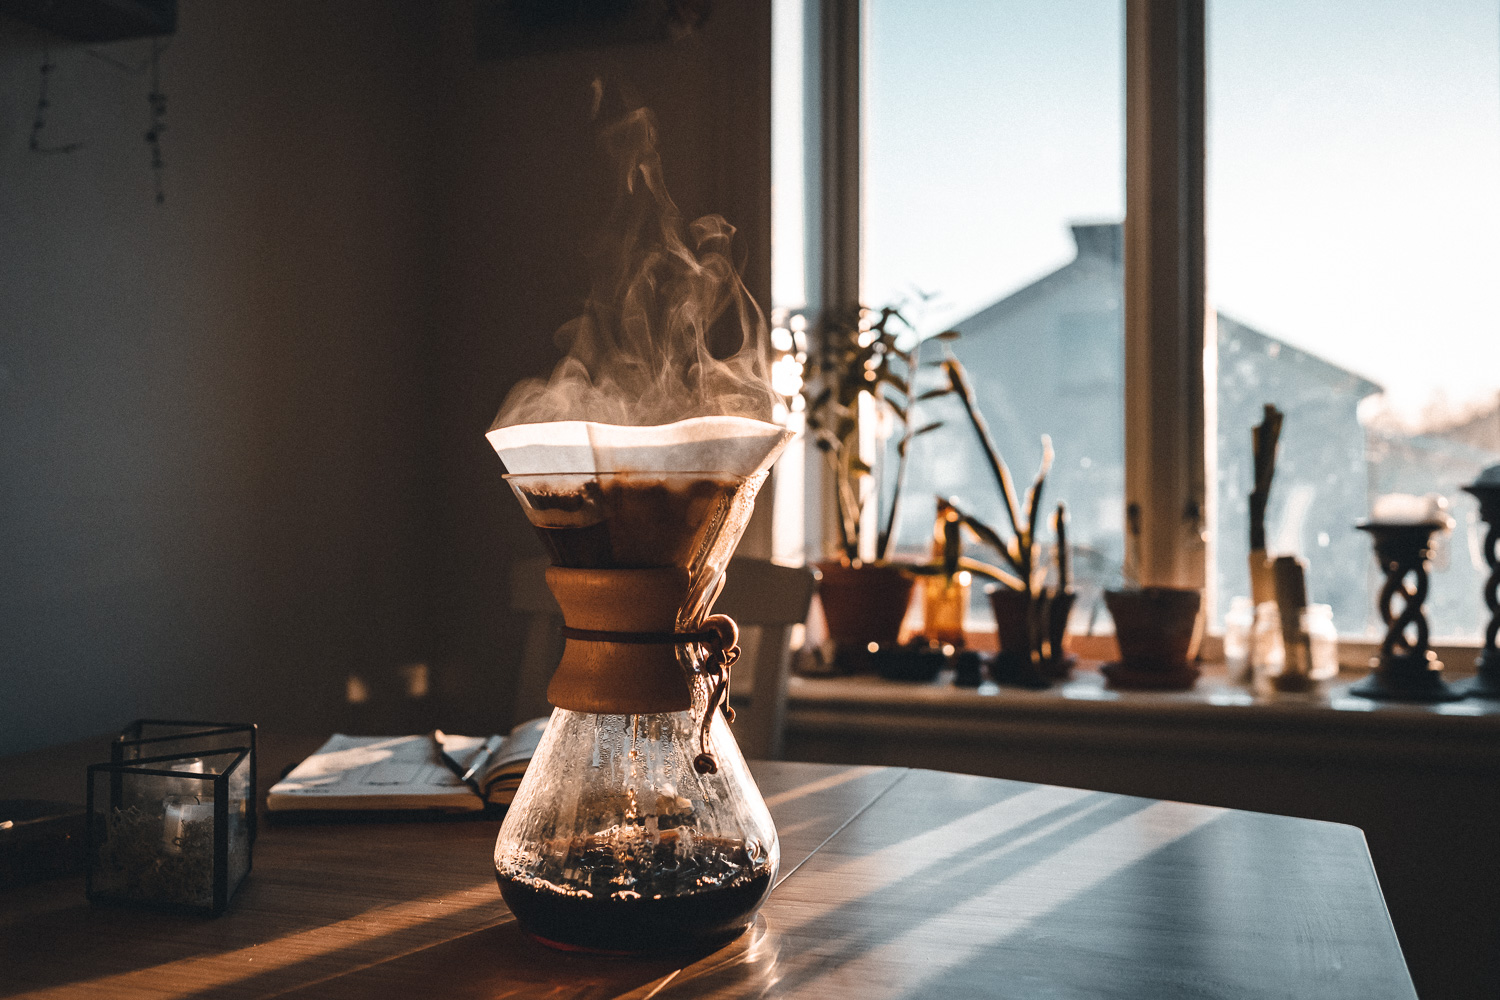 Morning coffee in a Chemex